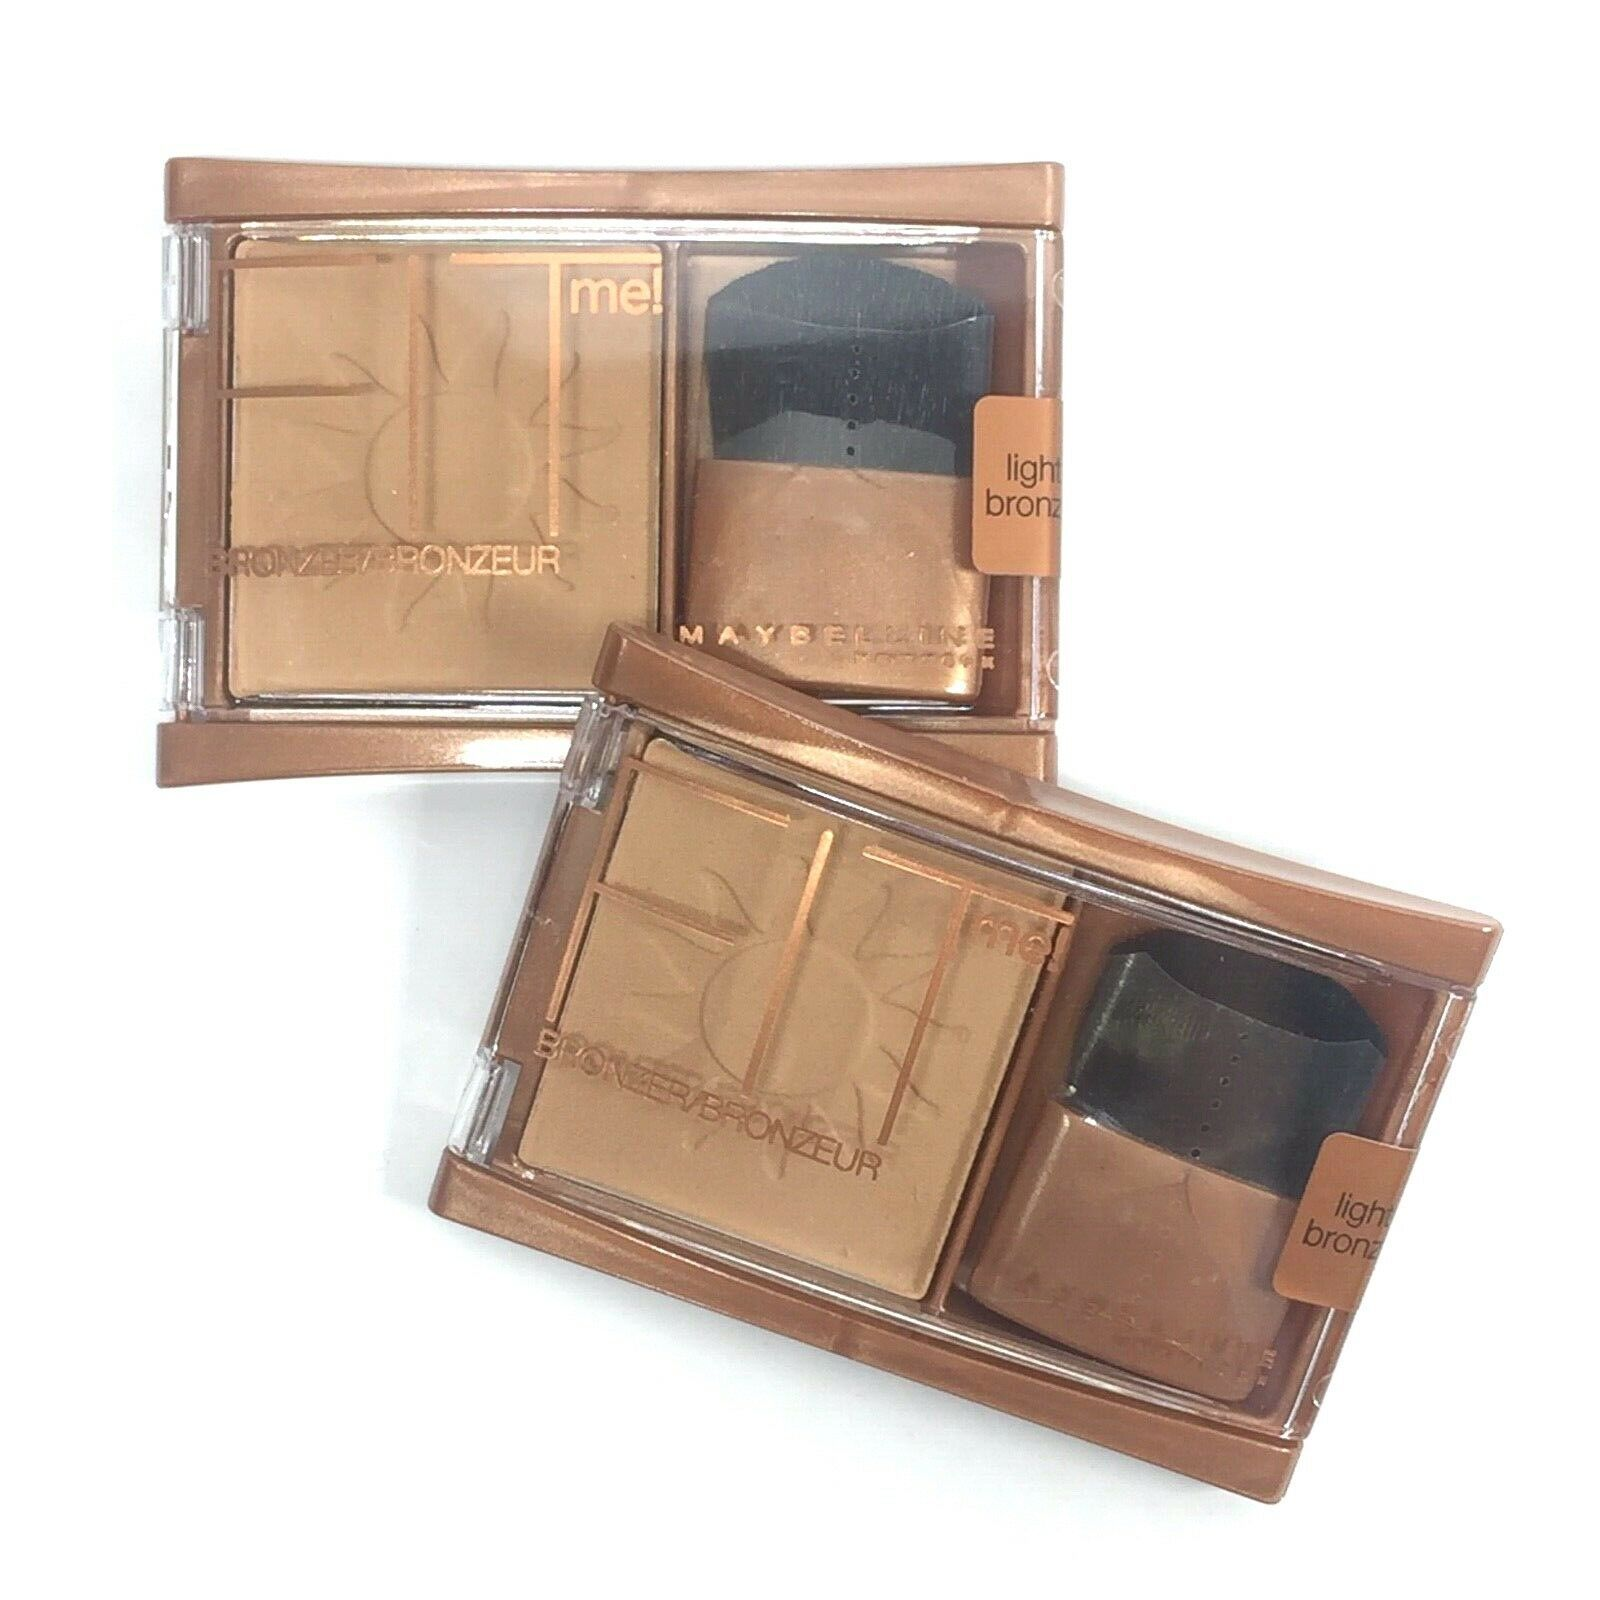 Primary image for Maybelline Fit Me! Bronzer Lot of 2, Light Bronze, 0.16 Ounce Full Size